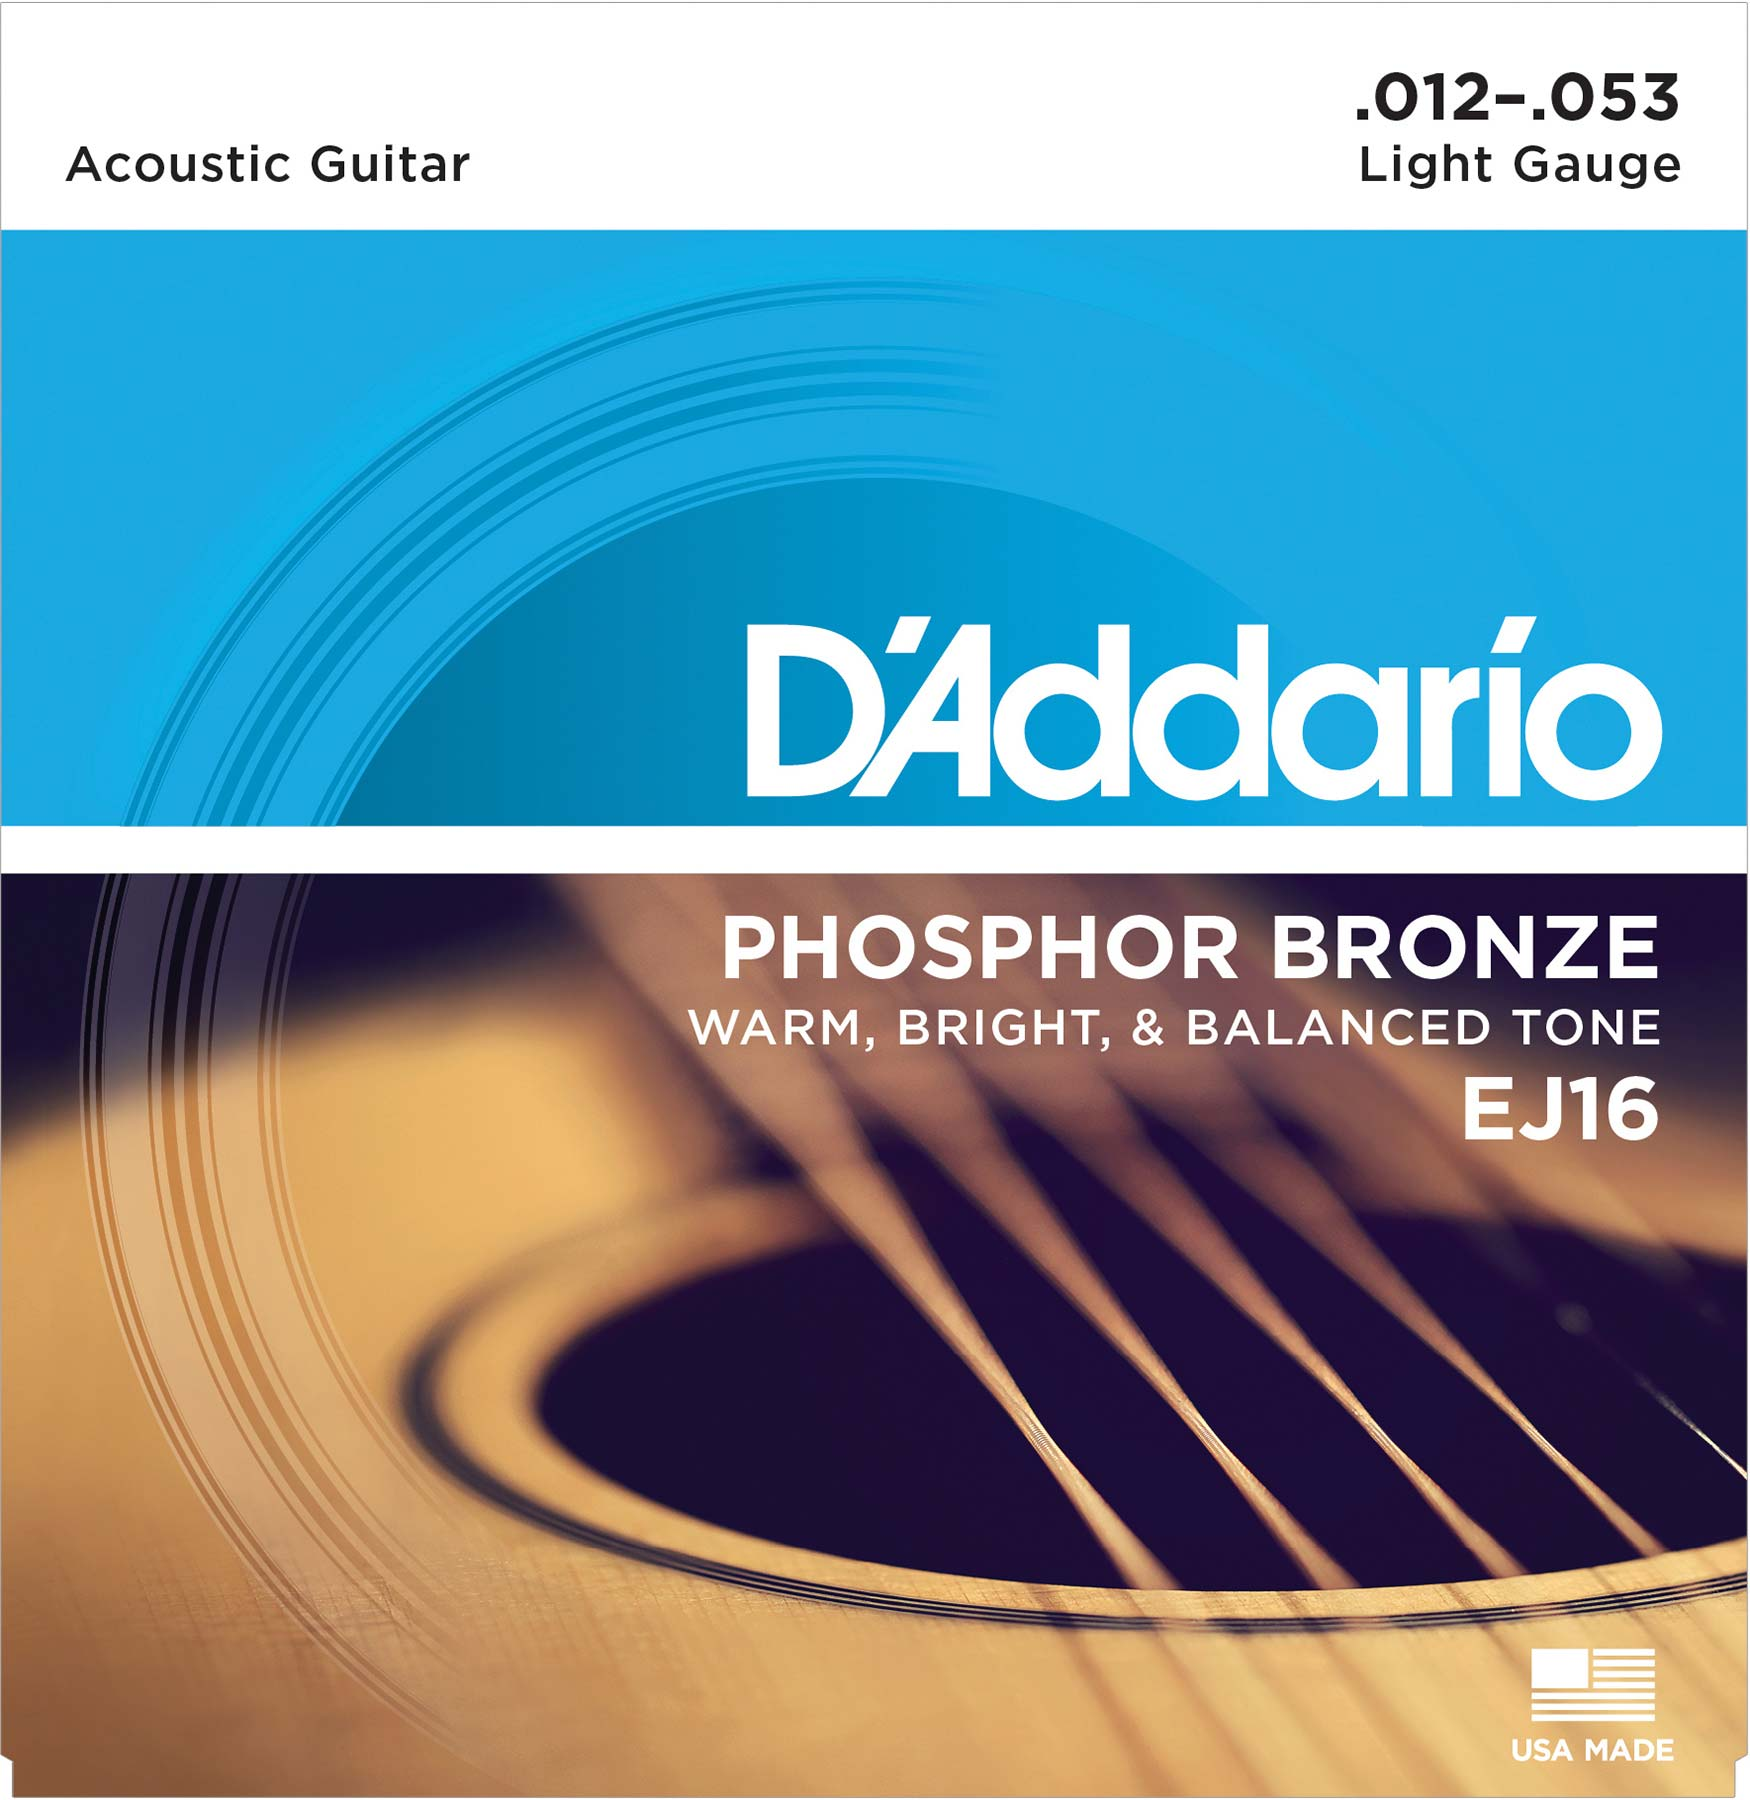 D'ADDARIO PHOSPHOR BRONZE ACOUSTIC GUITAR STRINGS LIGHT .012-.053